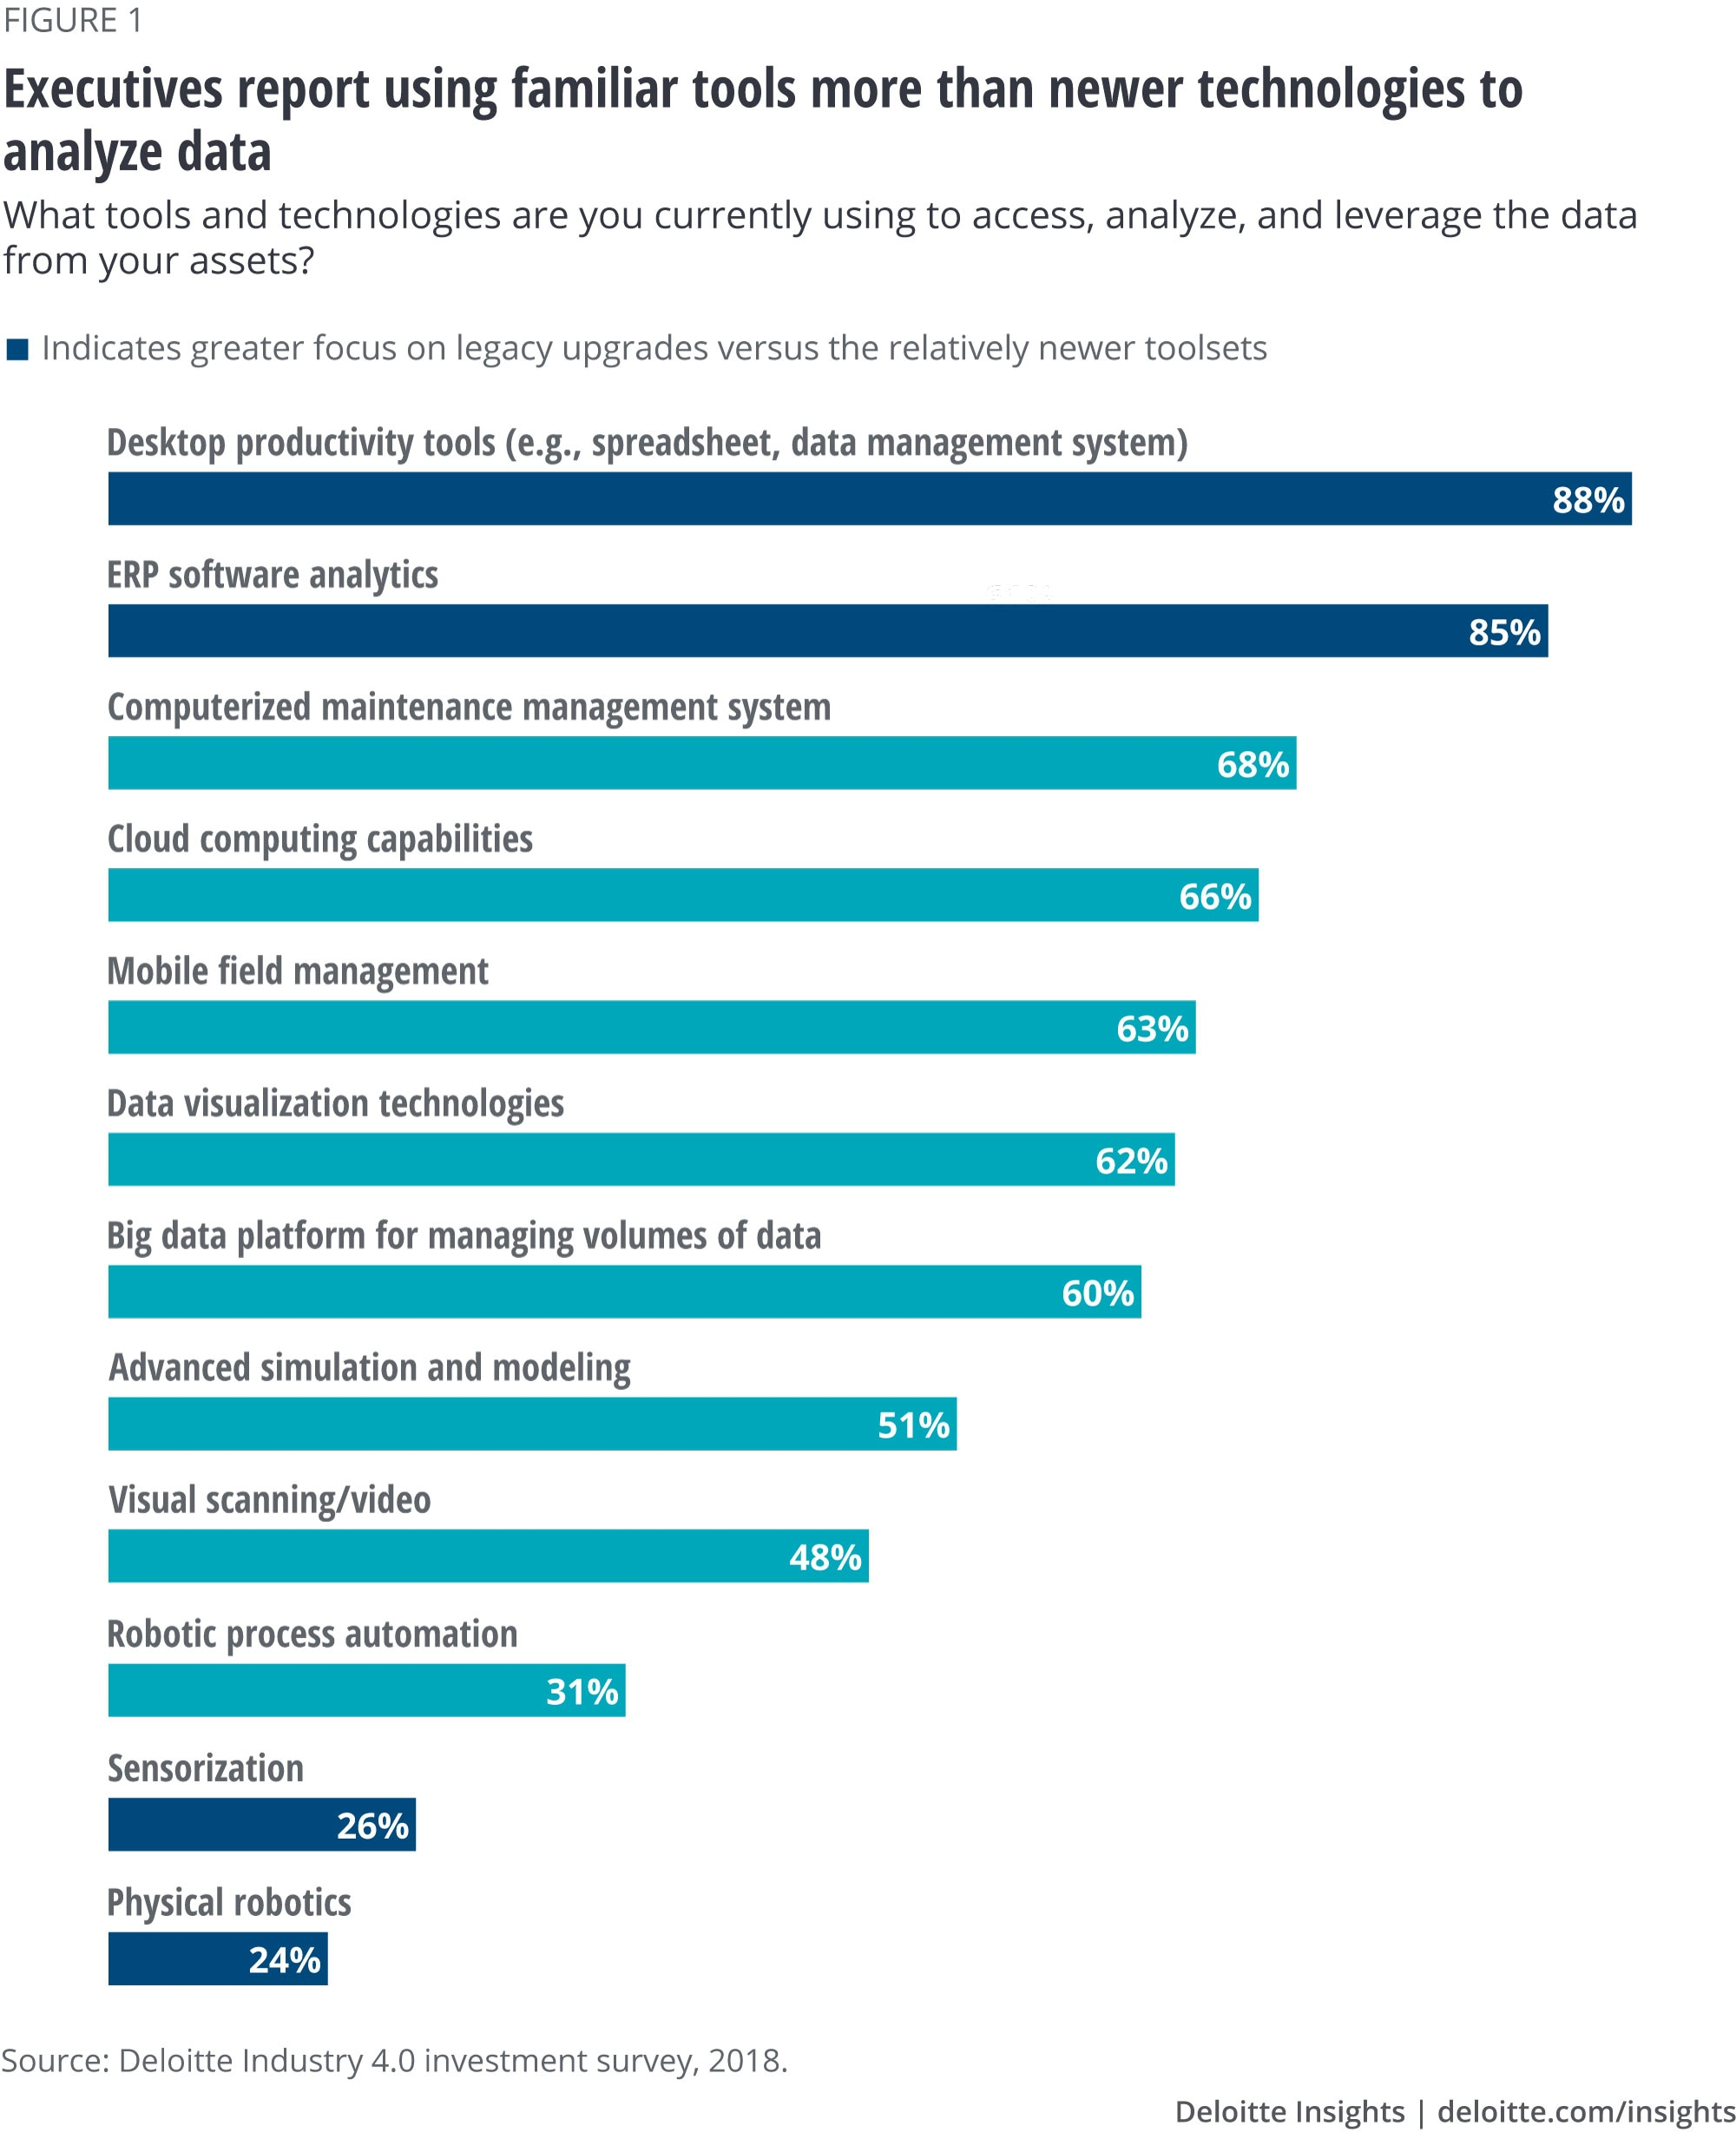 Executives report using familiar tools more than newer technologies to analyze data